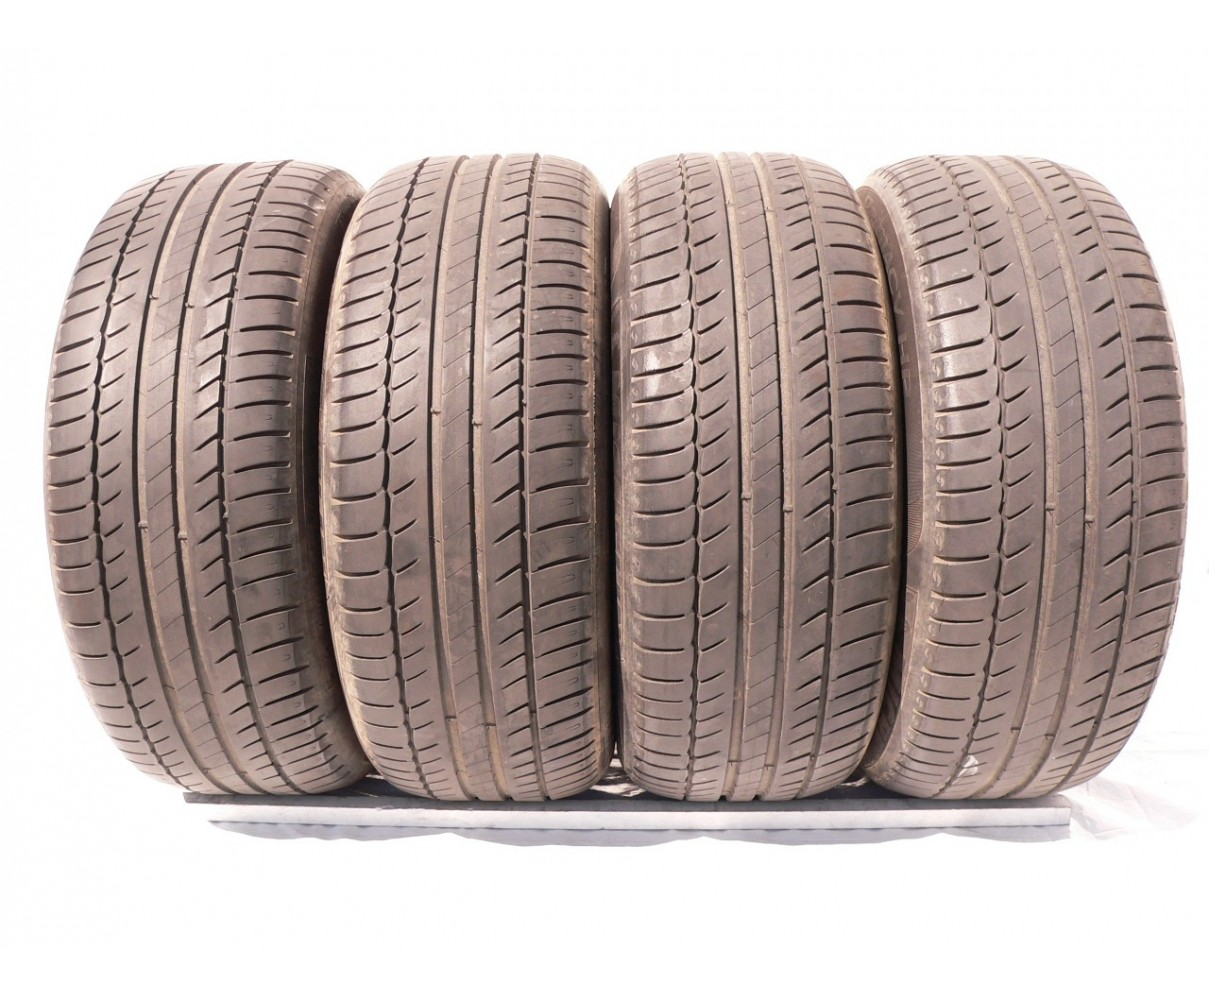 4 used tires 225 55 16 Michelin Primacy HP 80% life